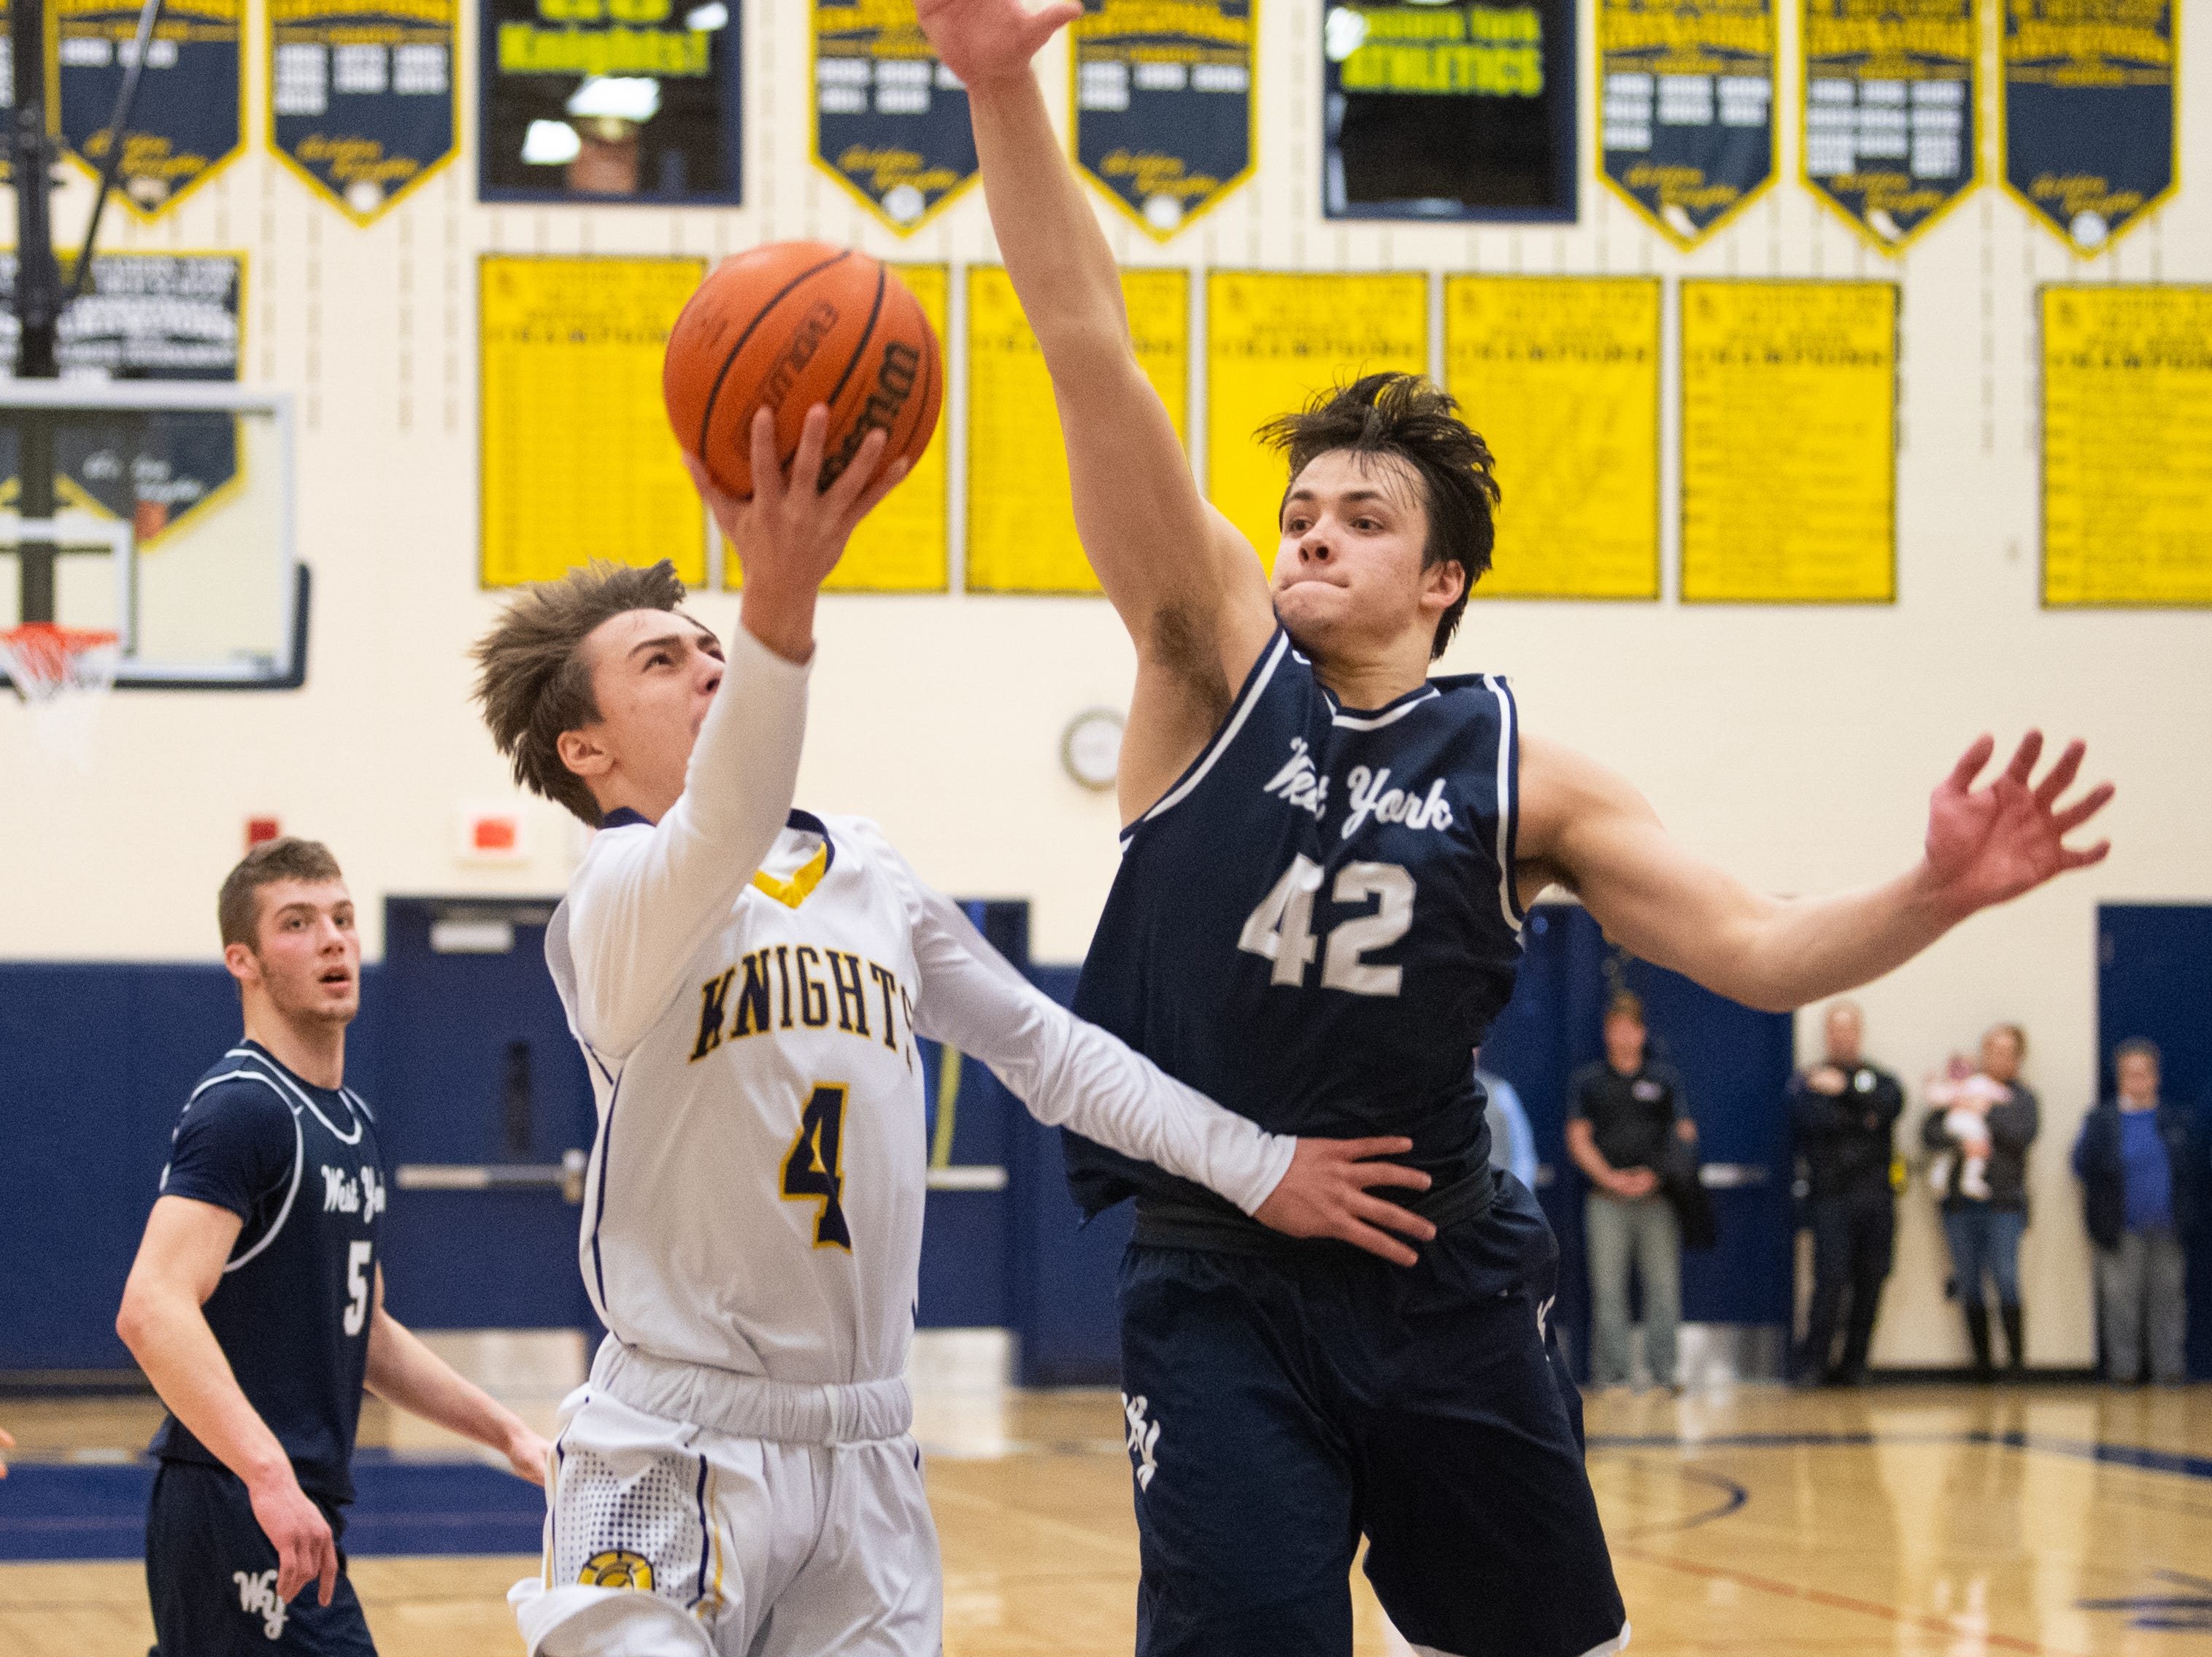 Gabe Mummert (42) looks to block Trevor Seitz (4) during the YAIAA boys' basketball game between Eastern York and West York, Friday, January 25, 2019 at Eastern York High School. The Golden Knights defeated the Bulldogs 59 to 55.